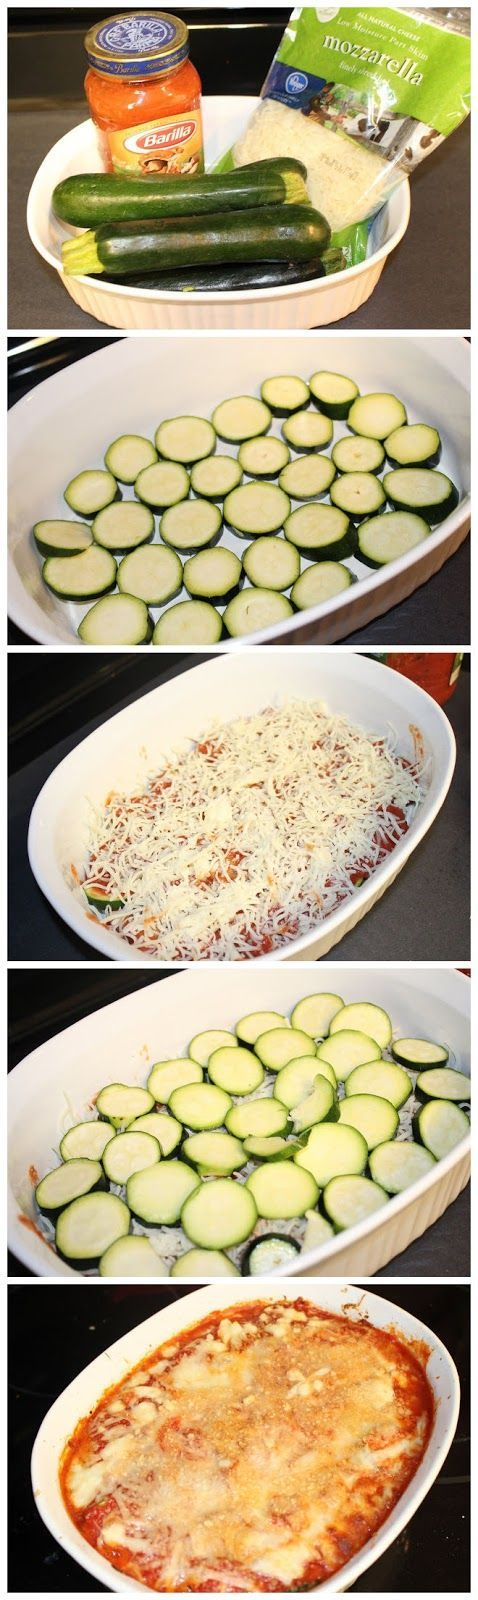 Easy Cheesy Zucchini Bake.  If you slice the zucchini lengthwise it'd be more lasagna like.  Even better